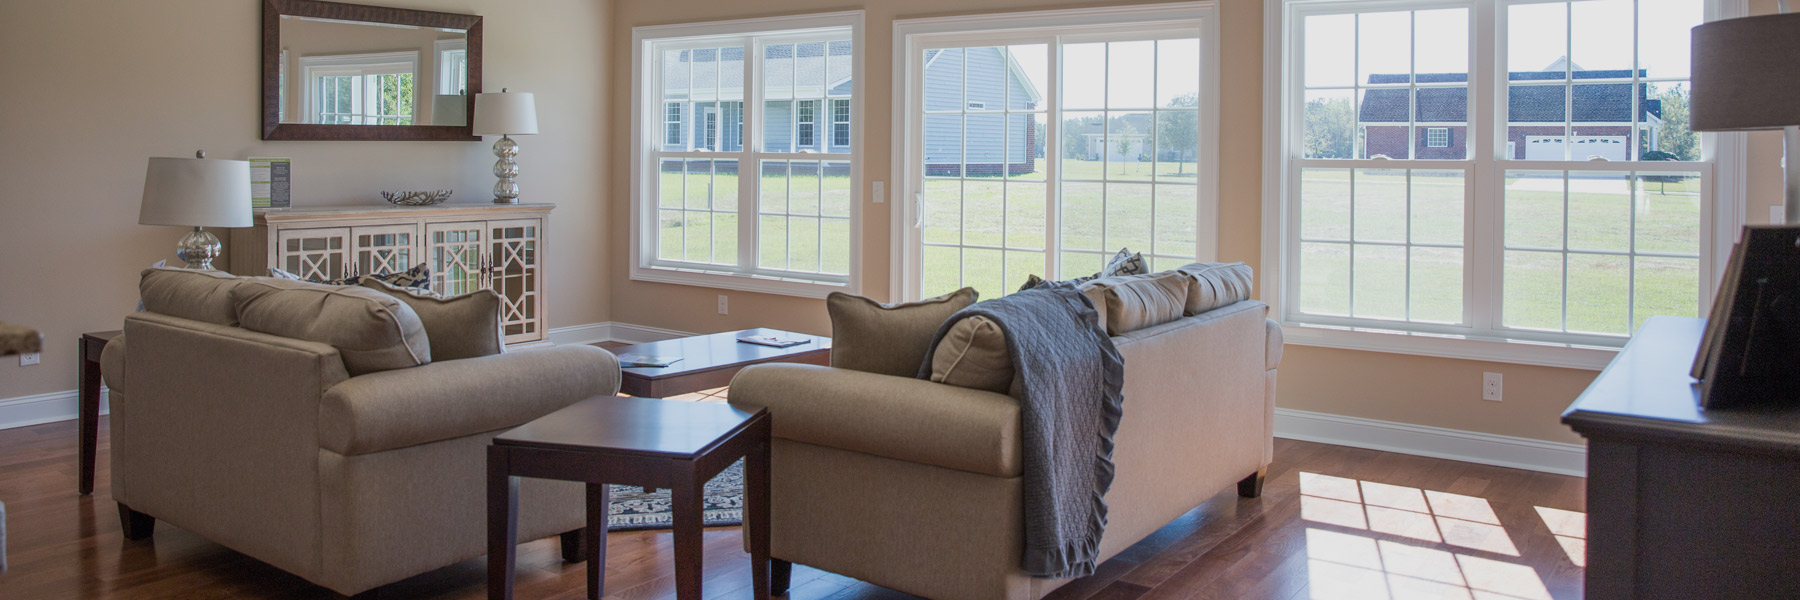 Home building process new homes for sale in conway for Home building process